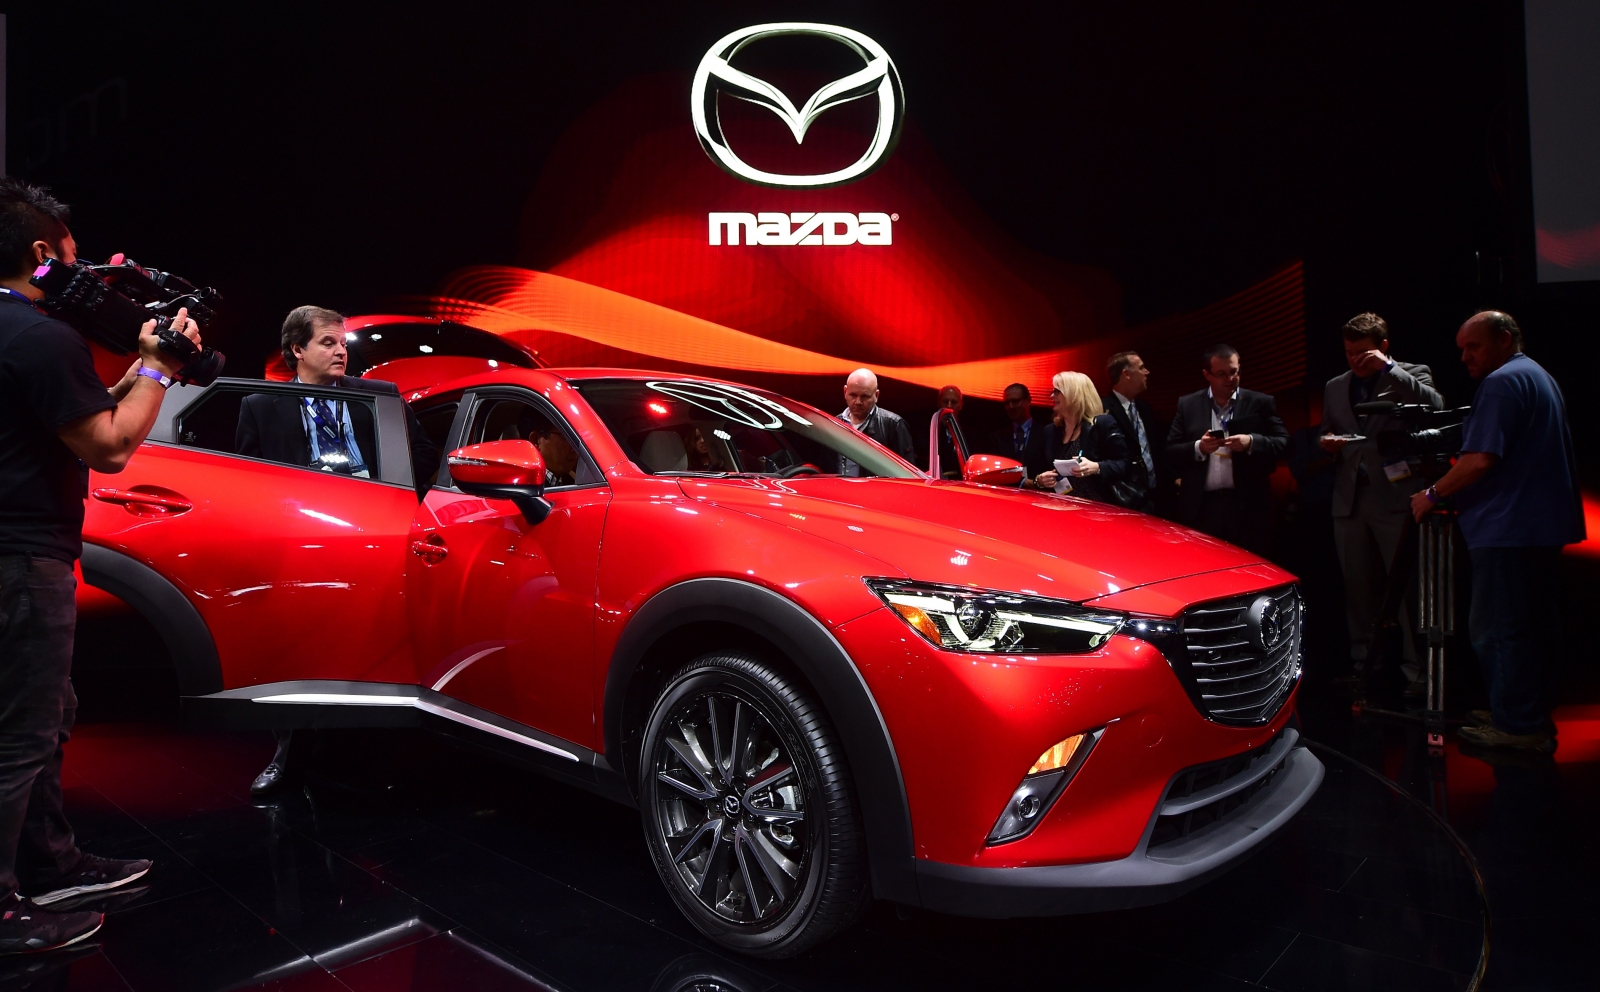 Mazda to recall more than 2 million vehicles worldwide over defected tail gate and engine problems